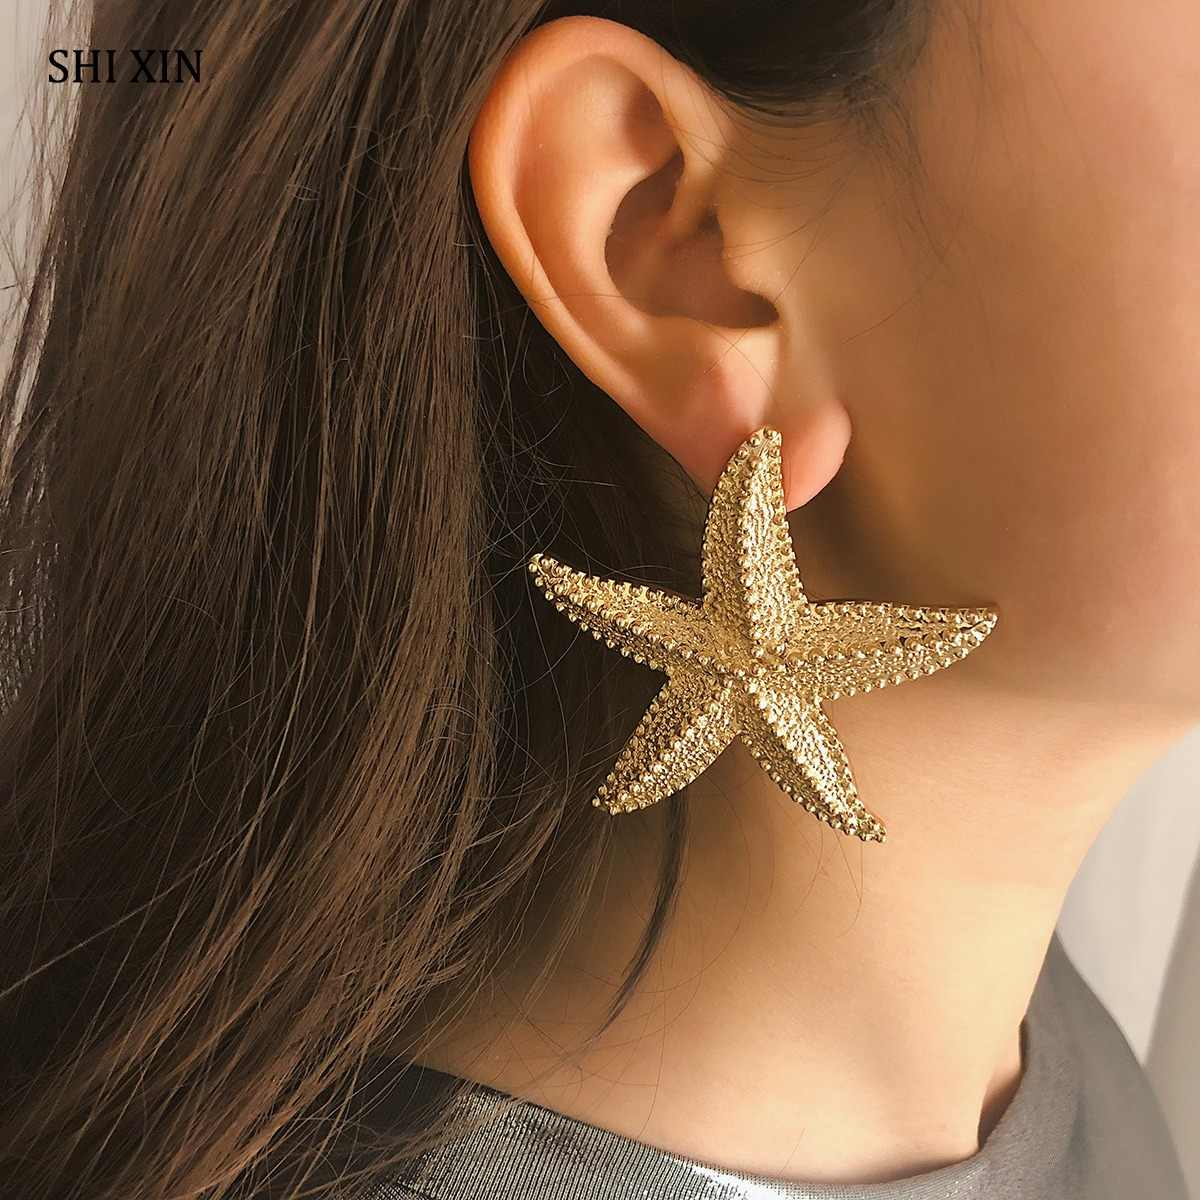 SHIXIN Exaggerated Boho Big Starfish Stud Earrings Women Fashion Modern Sea Star Female Statement Jewelry Oorbellen Brincos Gift